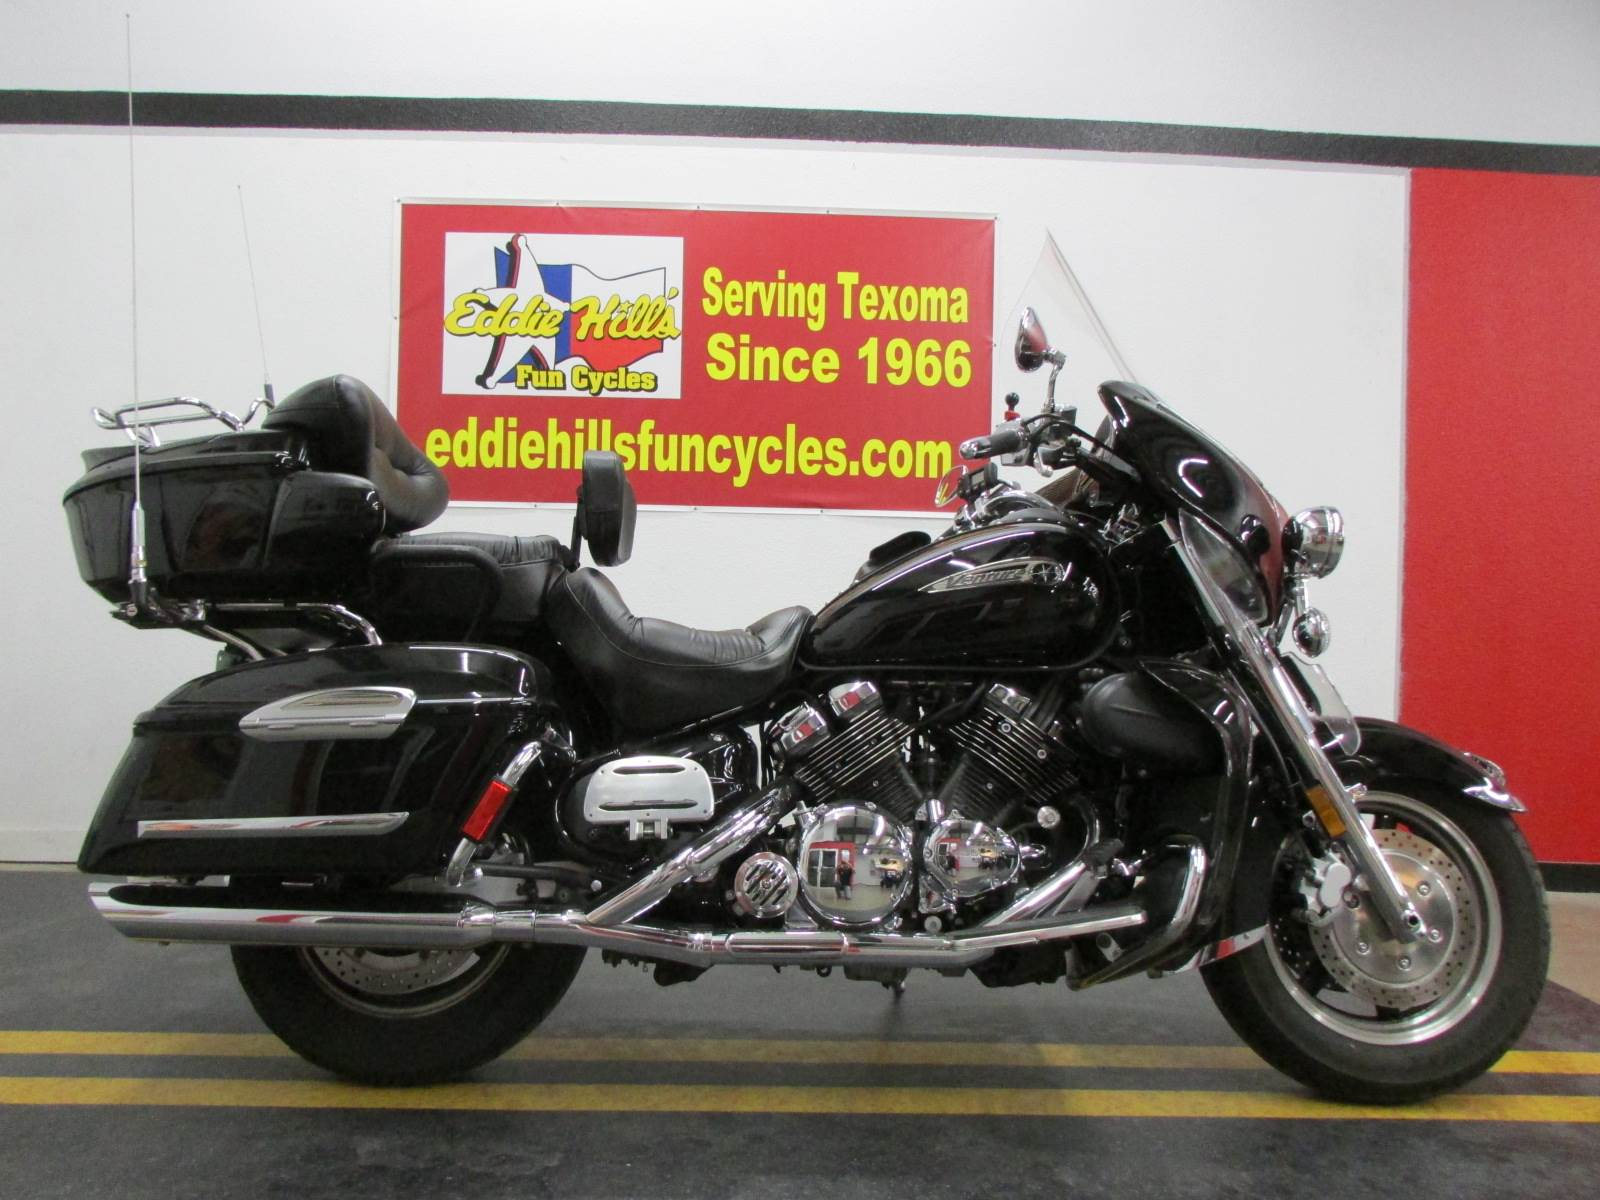 Used 2007 Yamaha VENTURE | Motorcycles in Wichita Falls TX | C380 BLACK